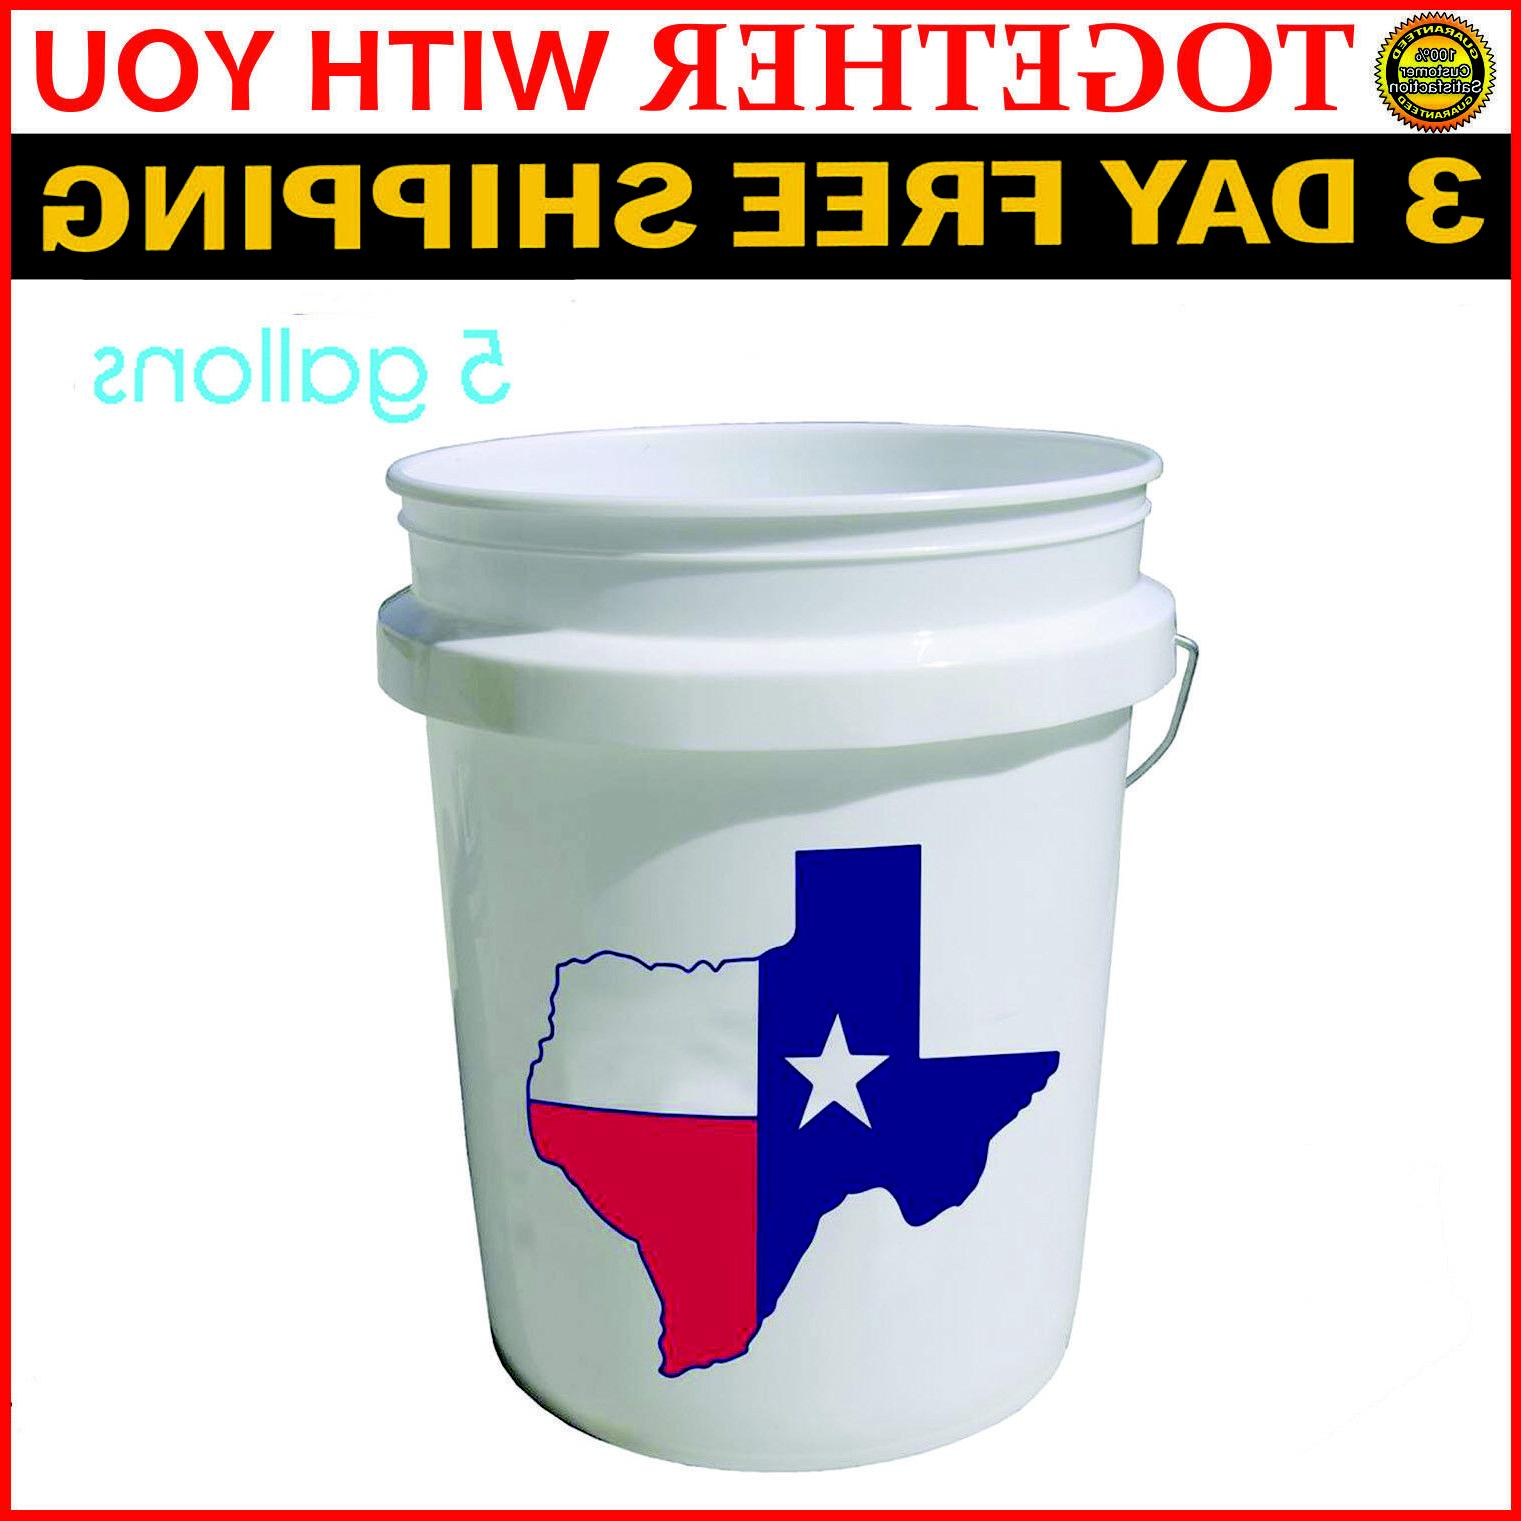 5 Plastic Bucket All Purpose Grade Storage